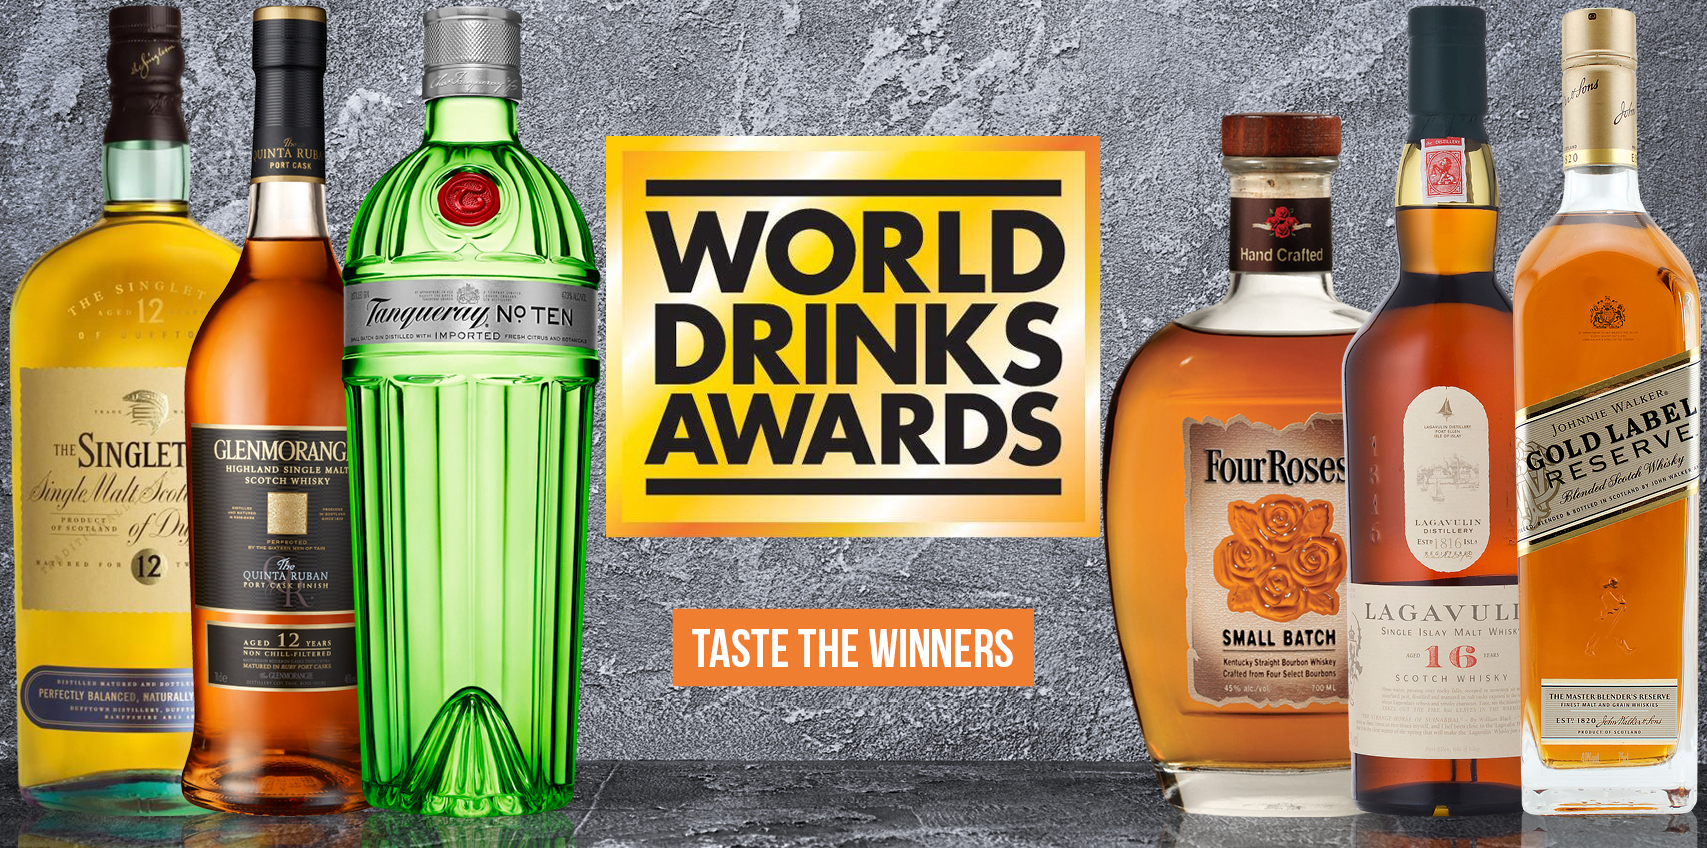 slider-world-drinks-awards-winners.jpg